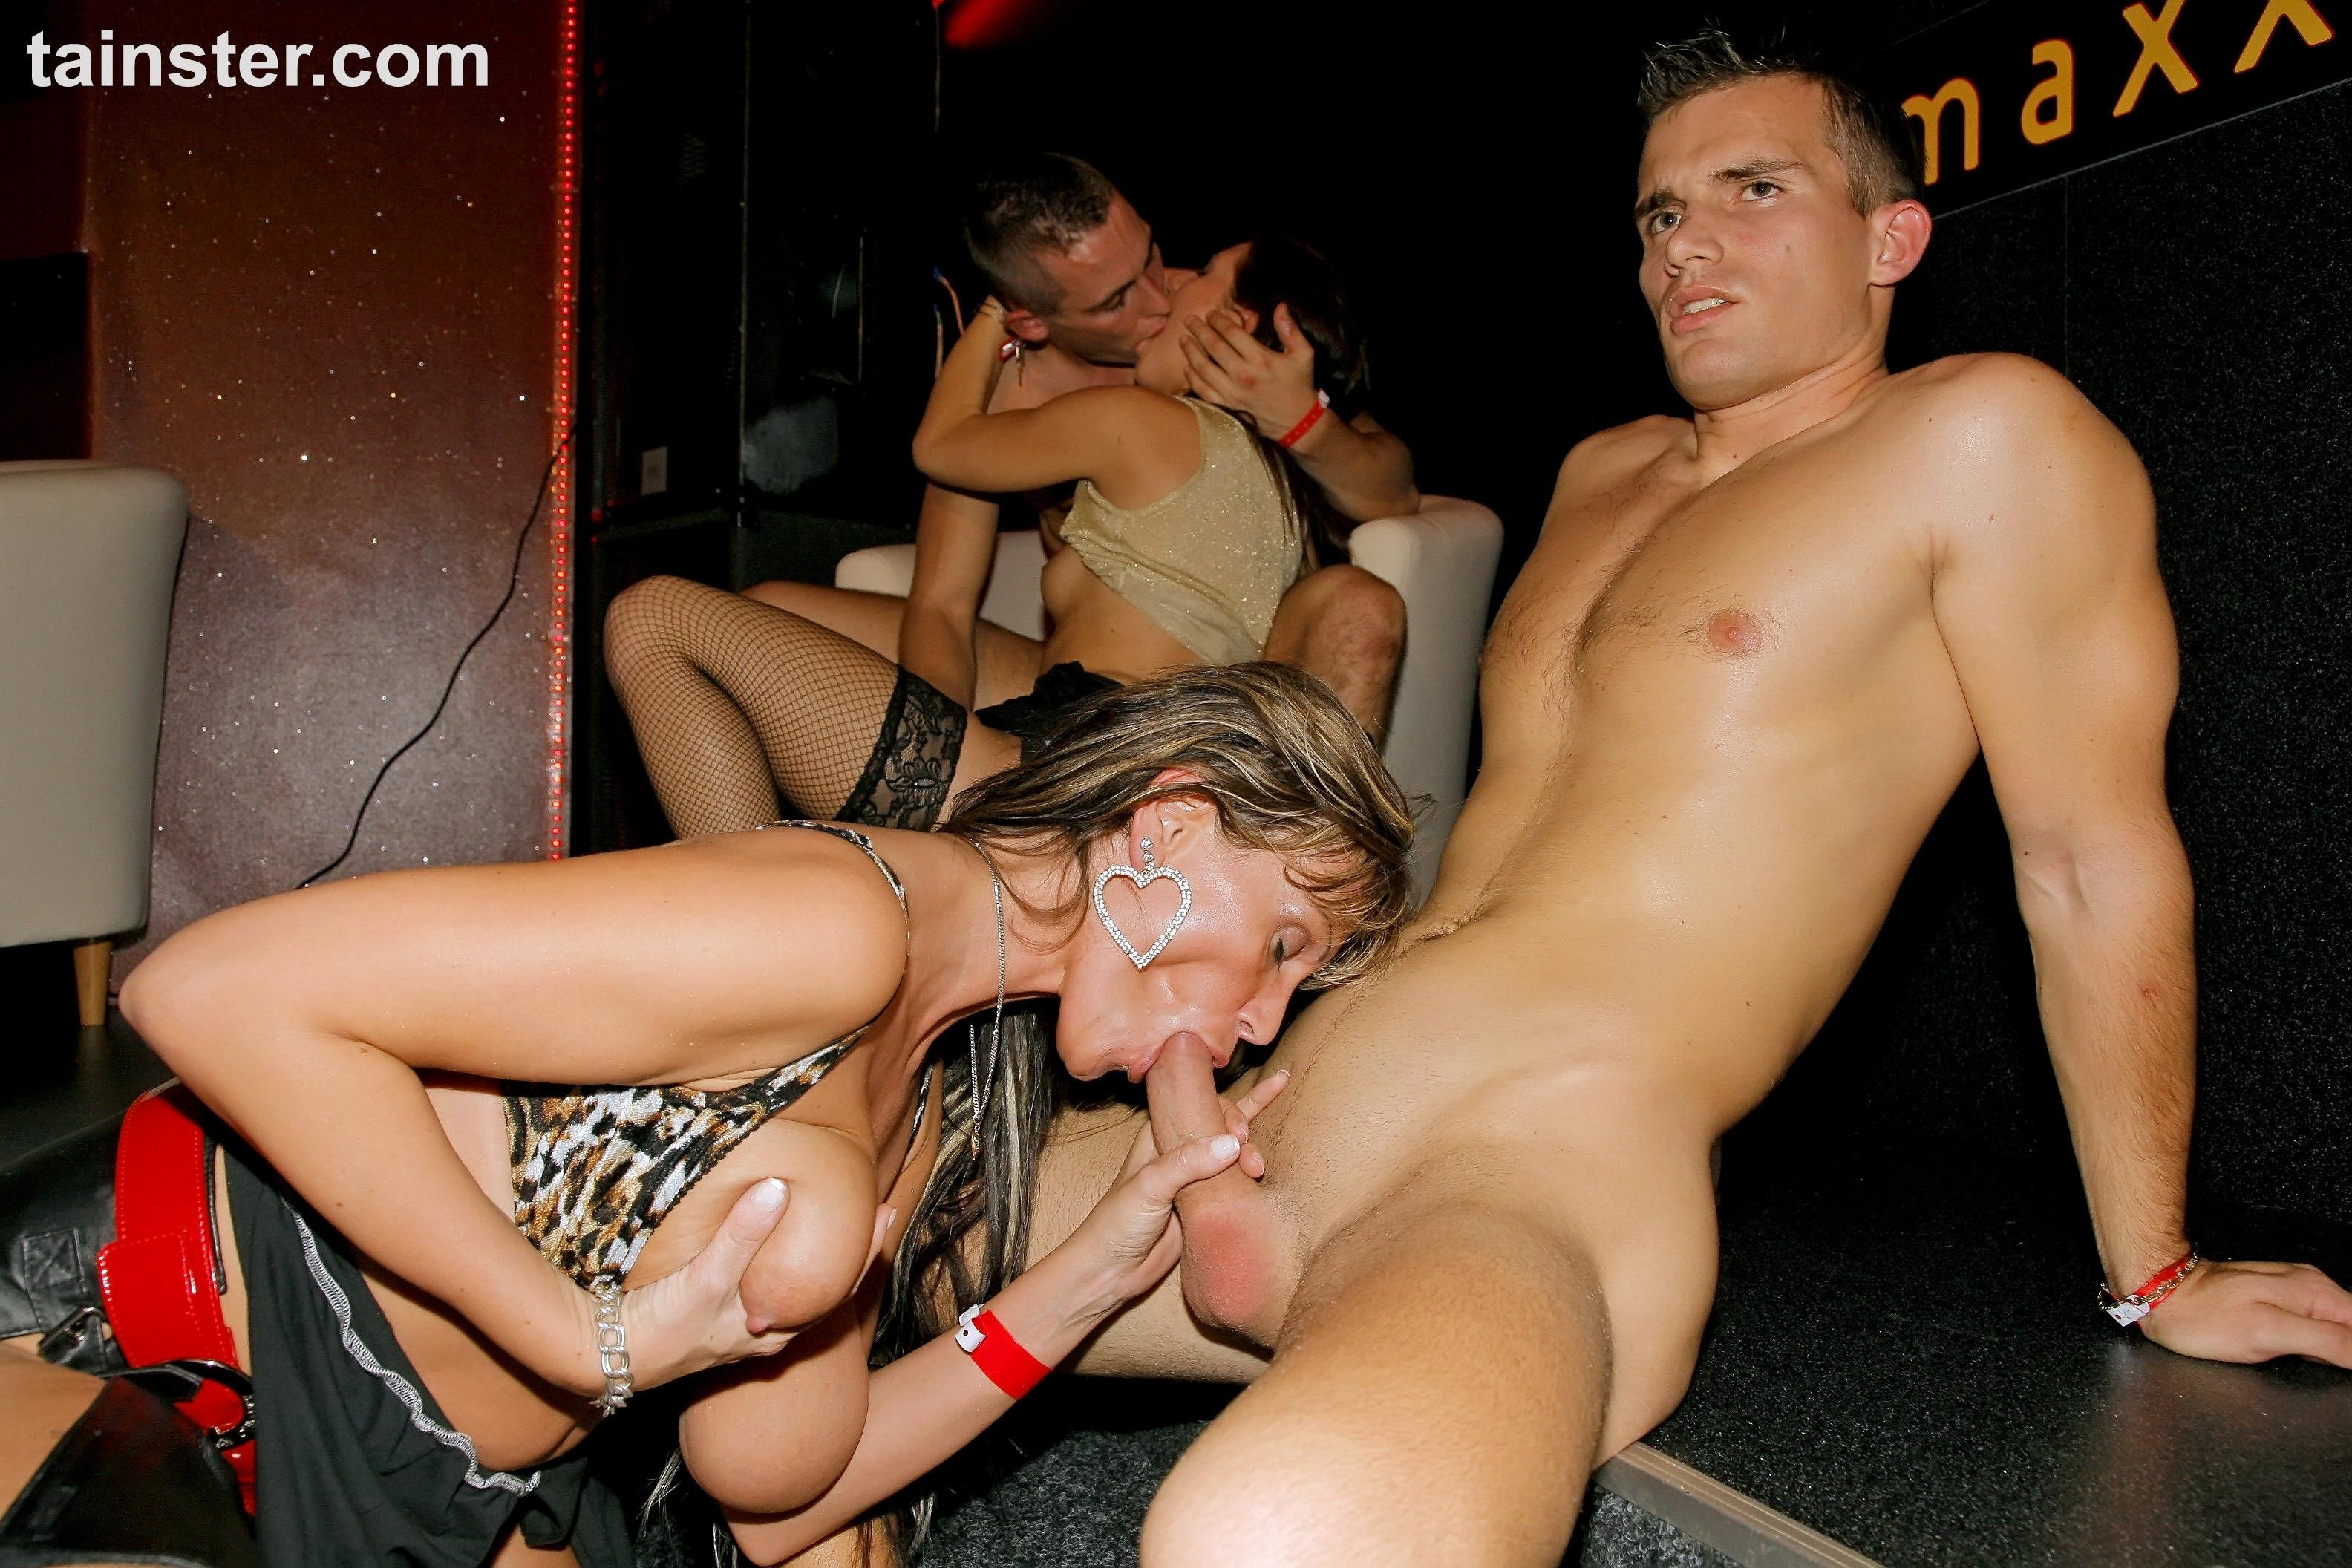 Pono vip sexy photo, wrestler boy naked